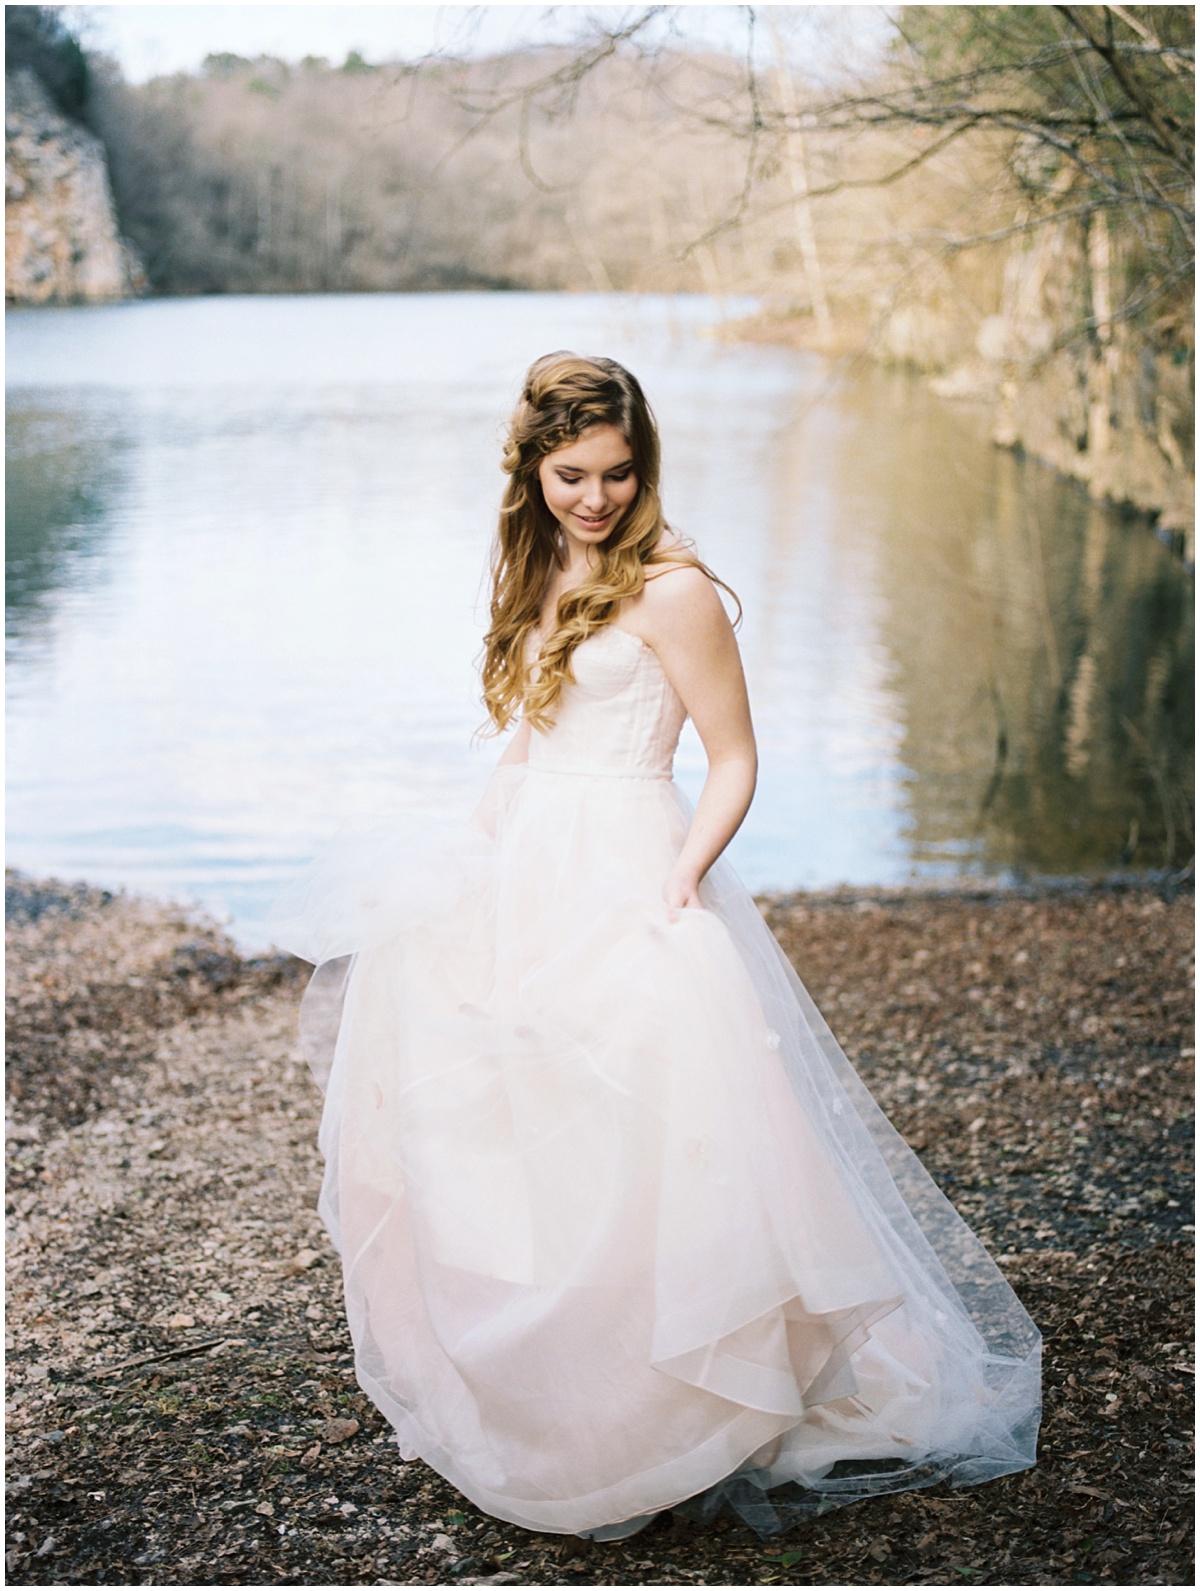 Abigail_Malone_Film_Wedding_Photography_KNoxville_TN_Blush_Dress_Outdoor_Windy_Pink_and_Green_Wedding_0021.jpg